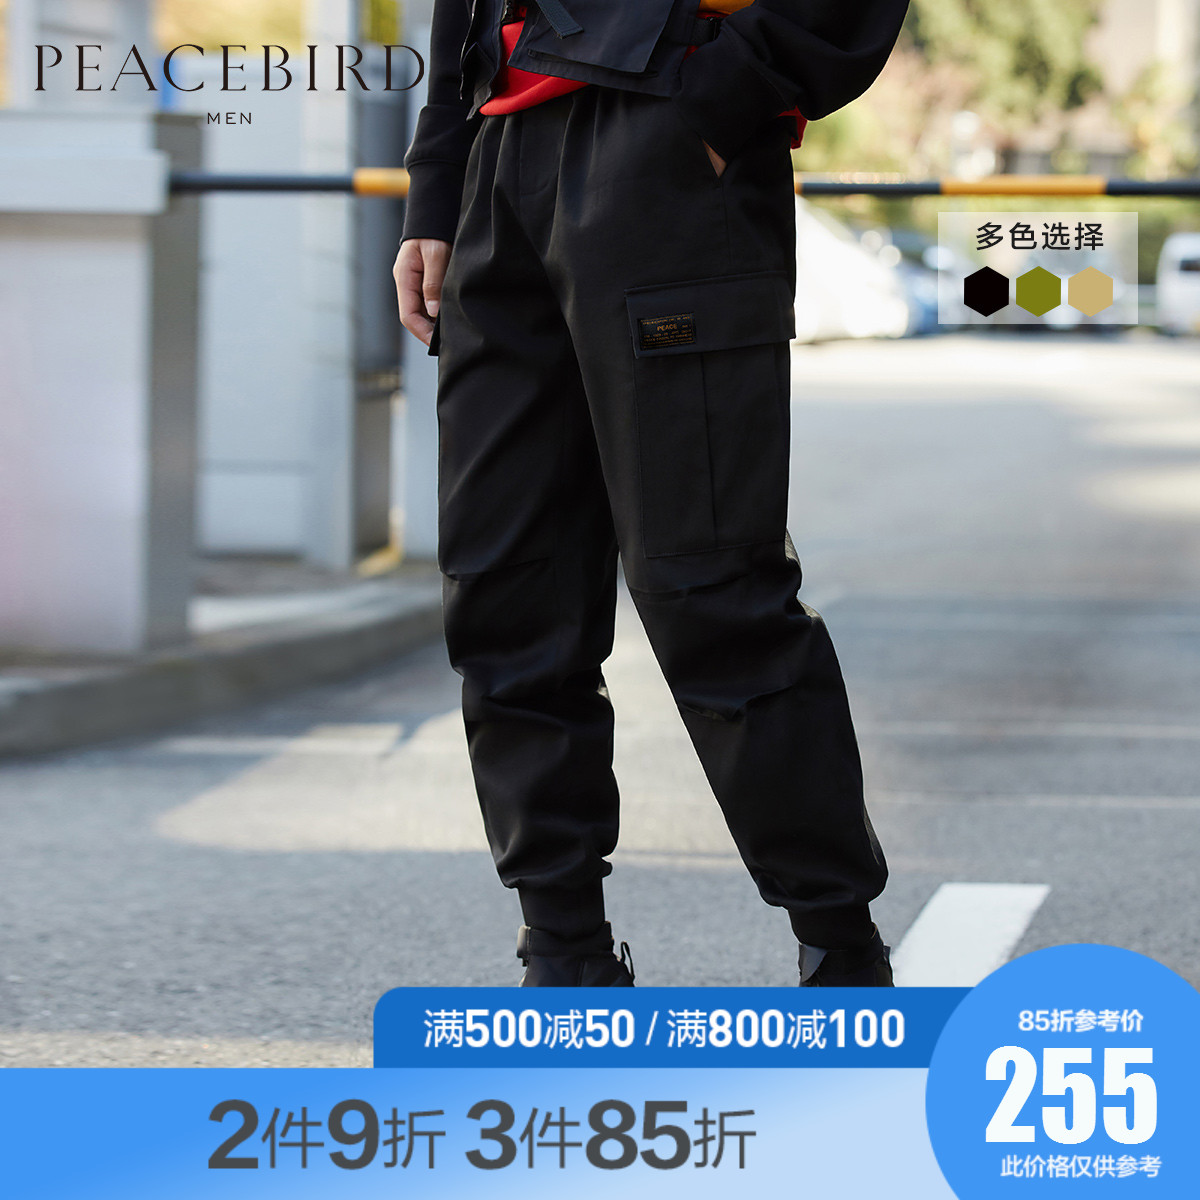 Taiping bird men's overalls men's fashion brand cargo casual pants legged pants ins pants Multi Pocket overalls